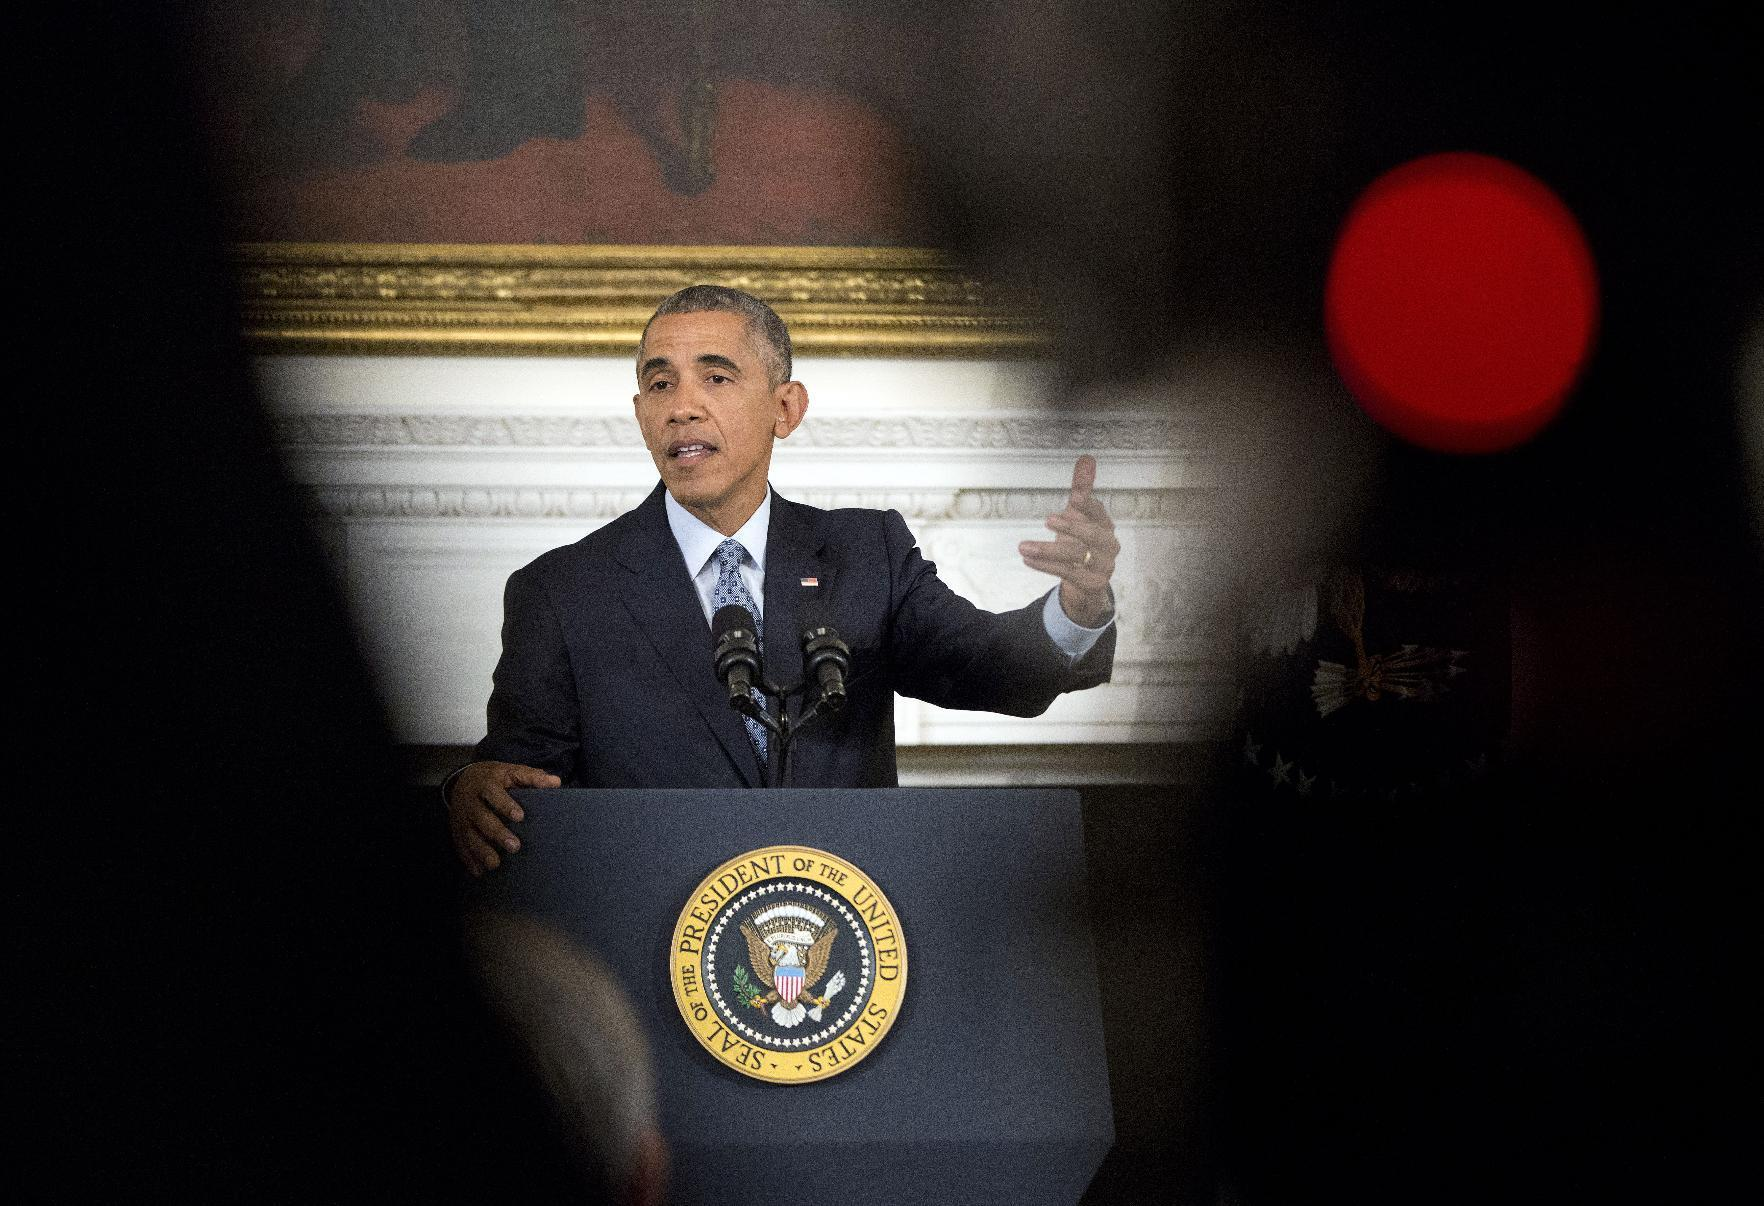 Obama: No more temporary spending bills, budget deal needed